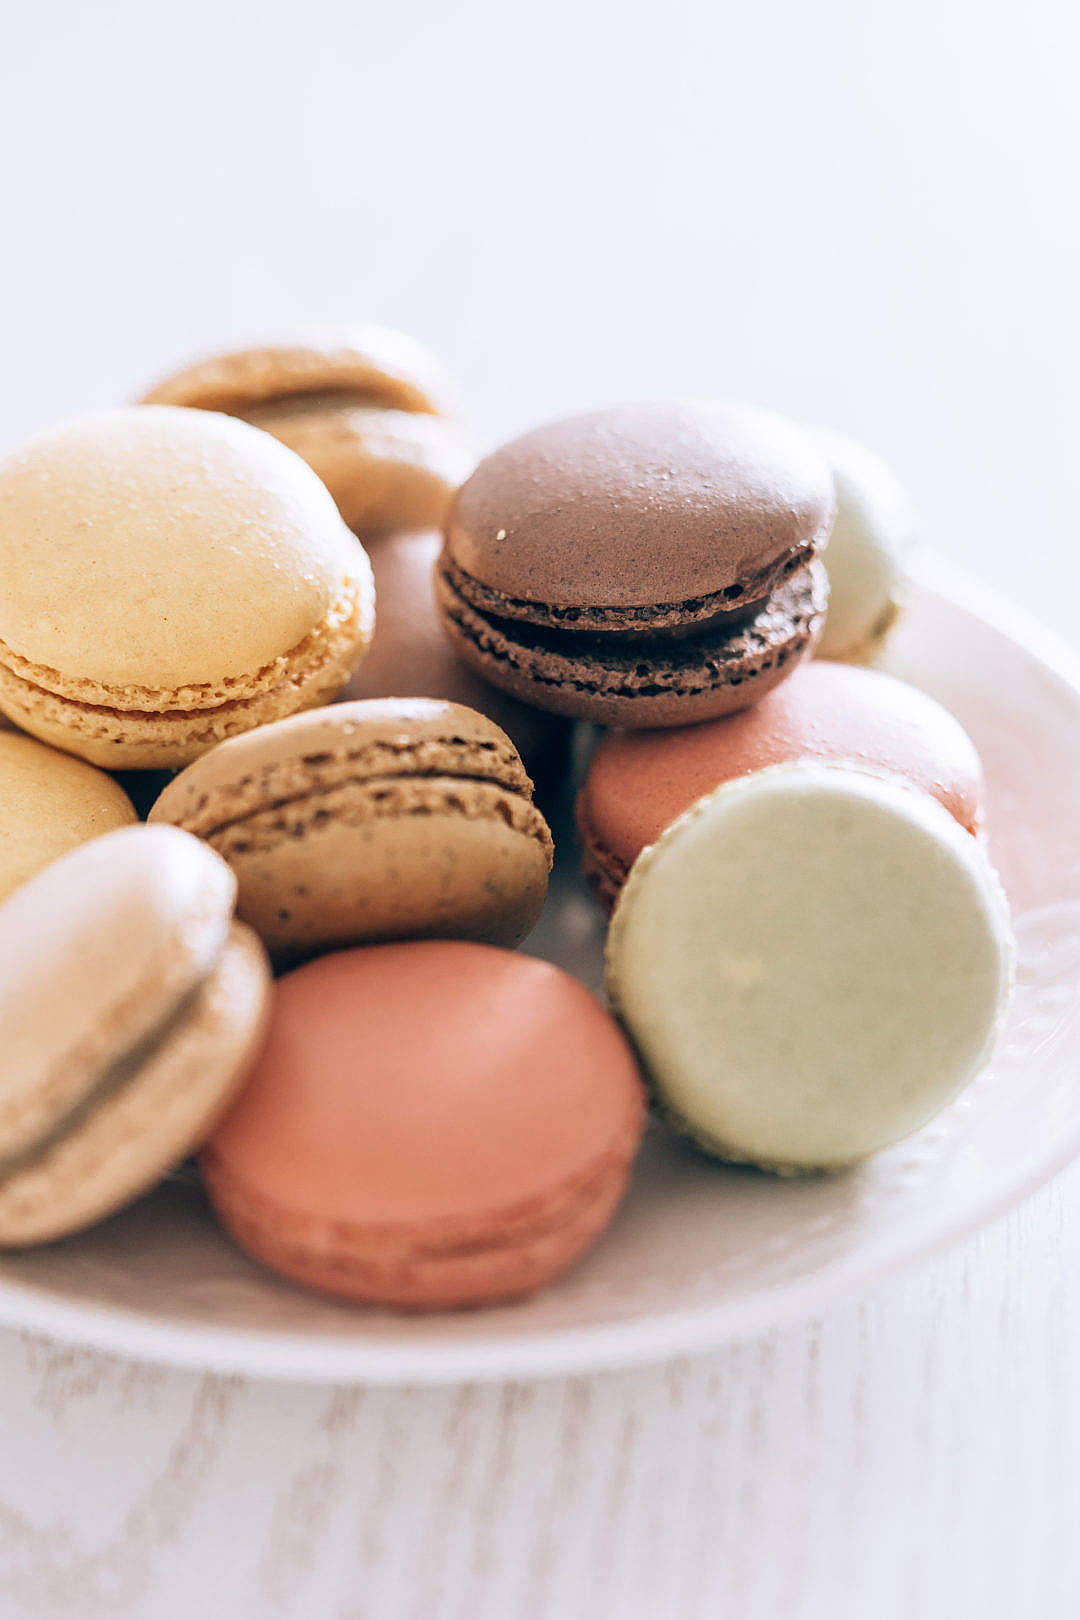 Download Homemade Macarons on a Plate FREE Stock Photo